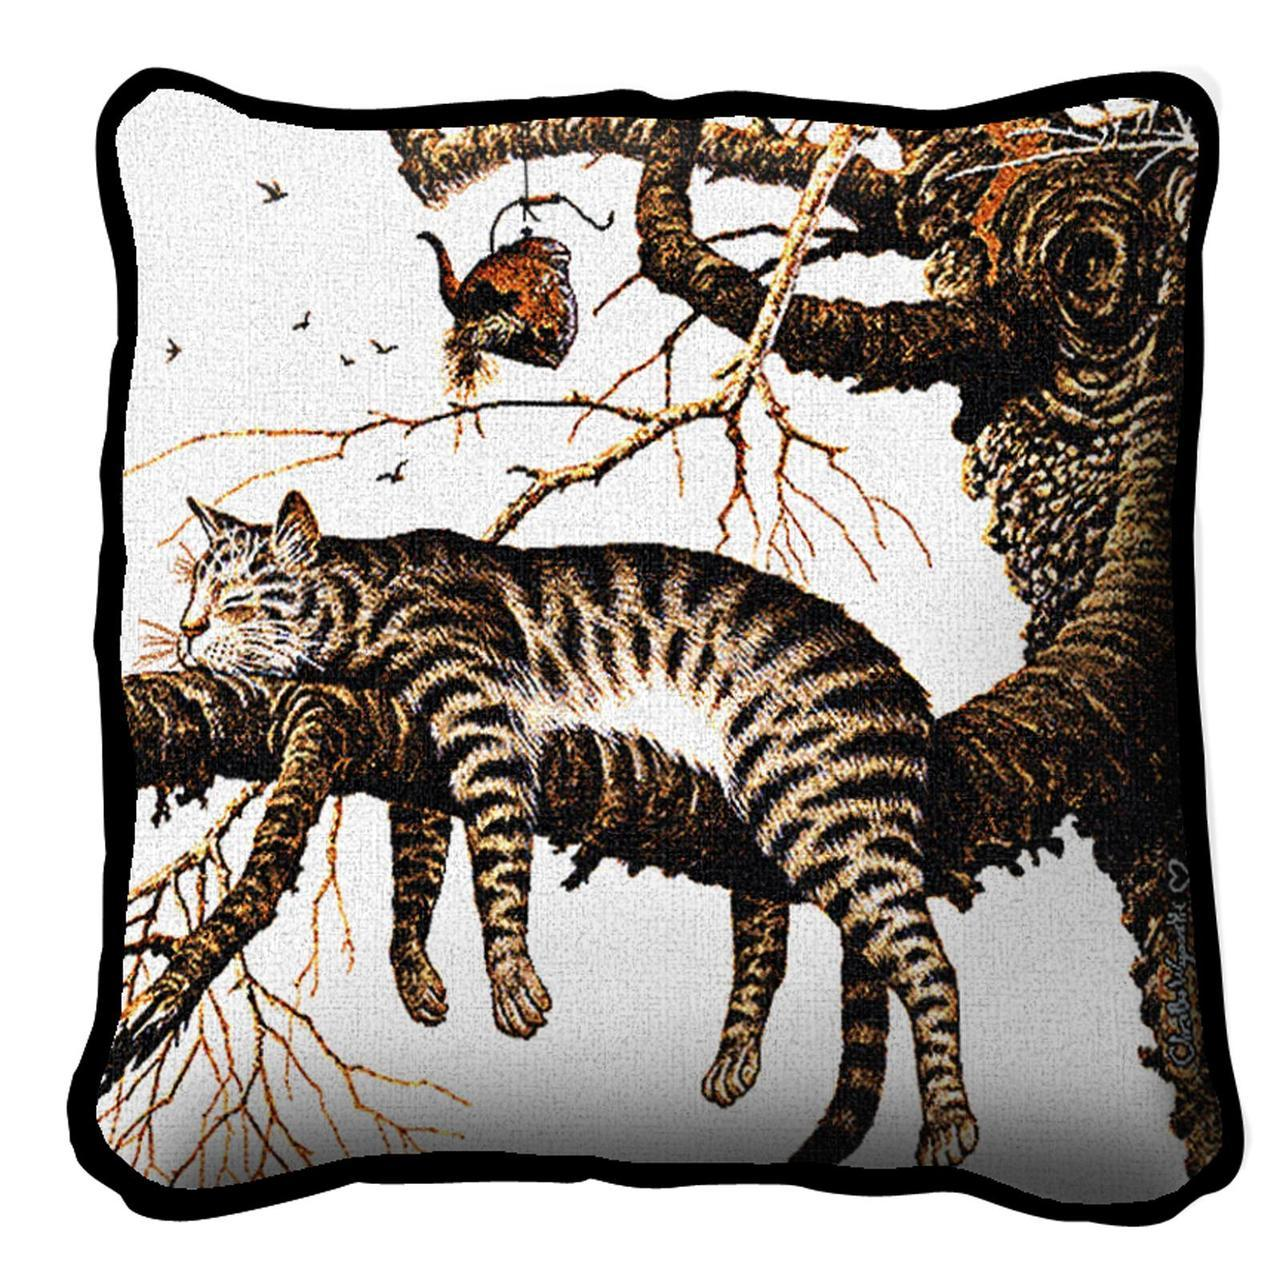 Throw Pillow-17 x 17-Animal Lover-Too Pooped to Participate-Cat